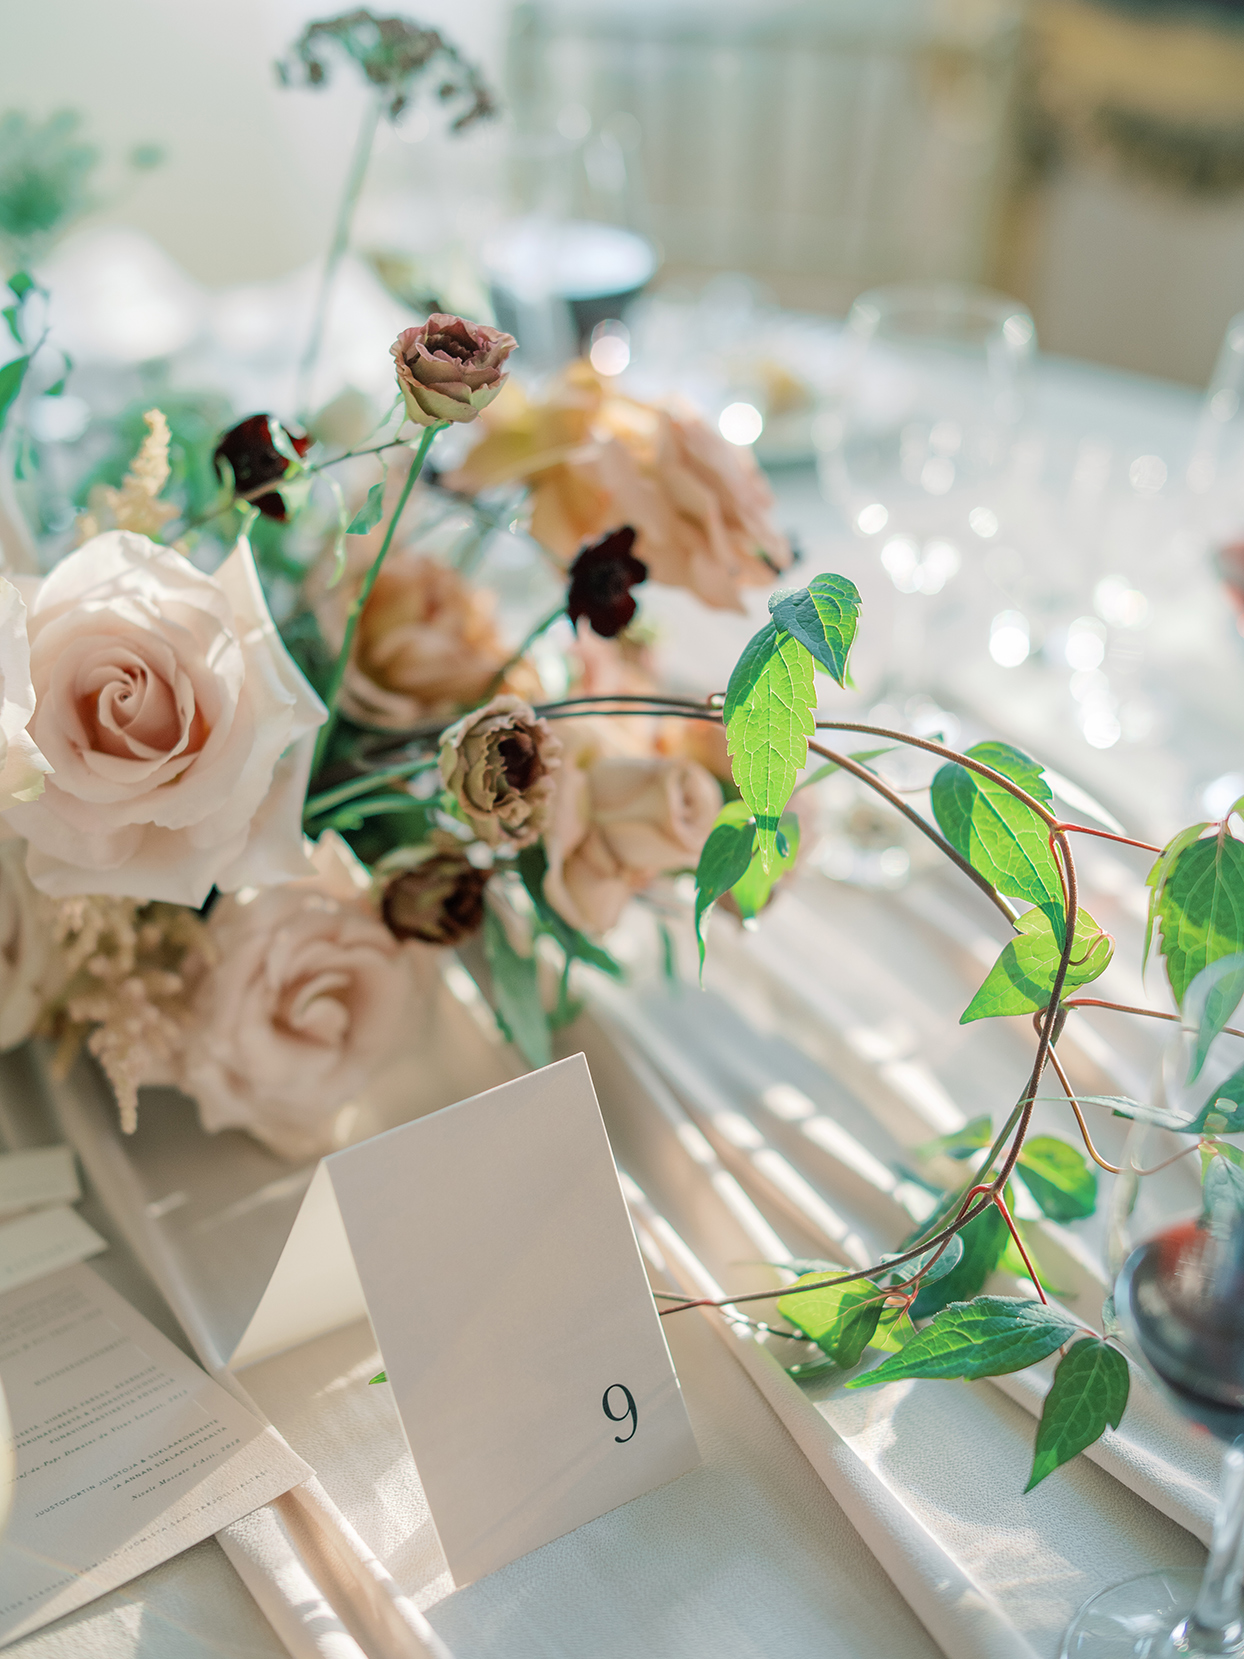 laura alexander wedding table numbers and flowers